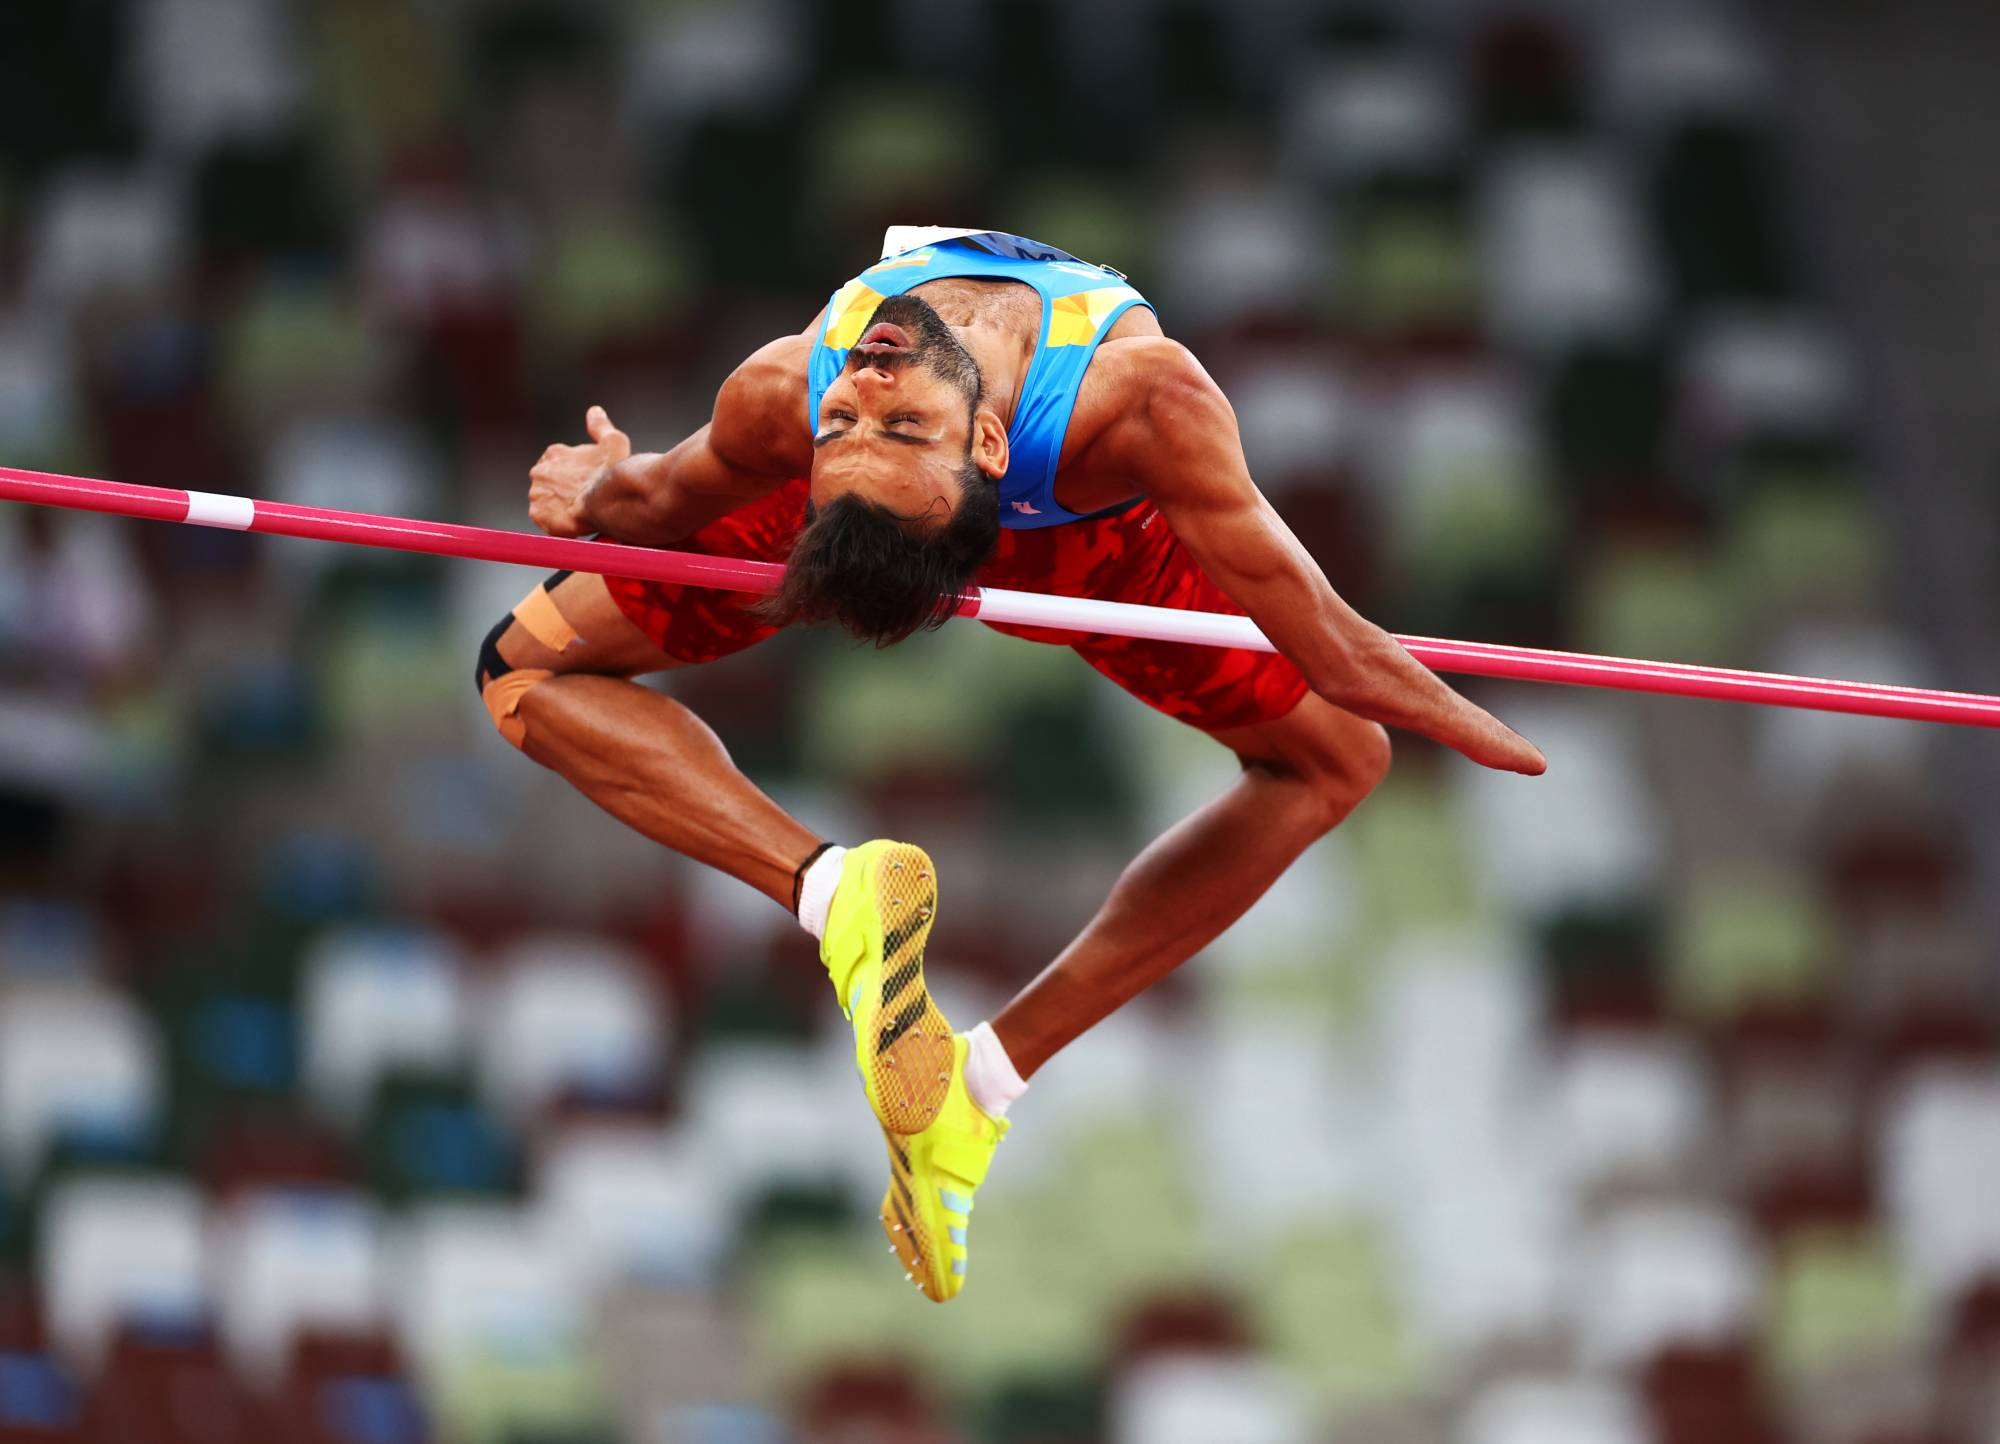 India's Ram Pal in action in the men's T47 high jump. | REUTERS